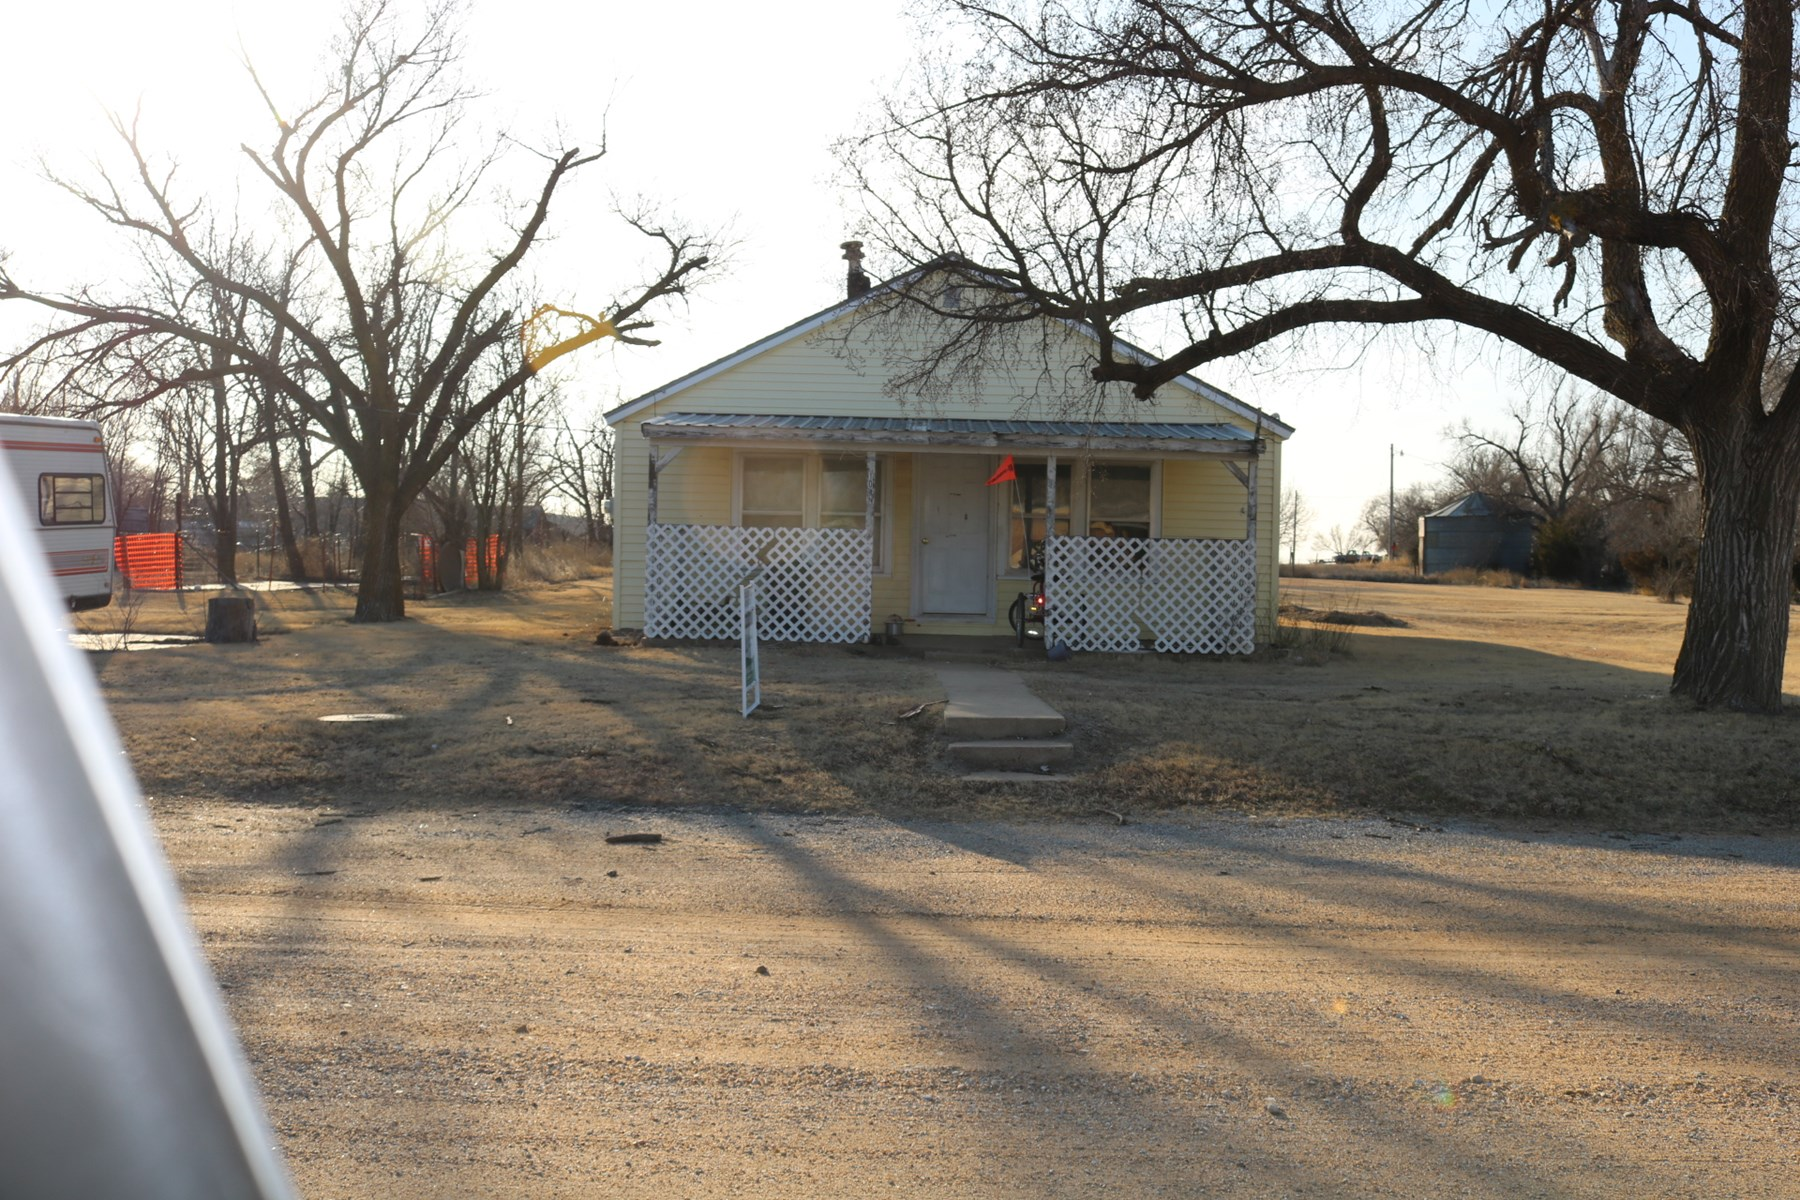 Home for sale Coldwater, Ks.